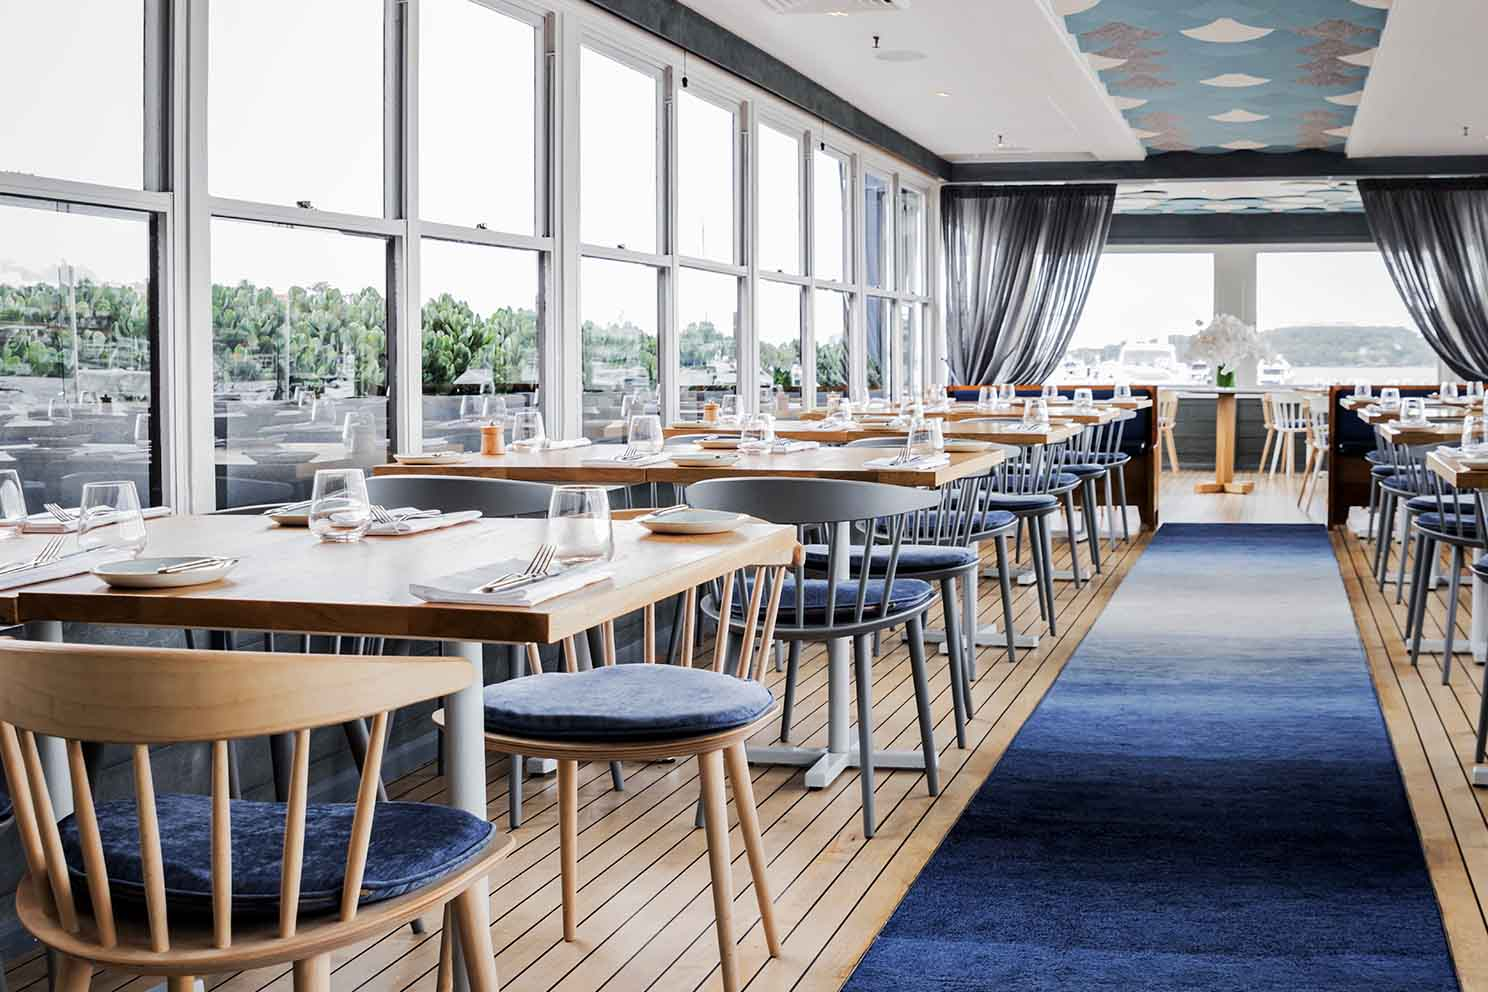 Regatta Dining – Venues With a View